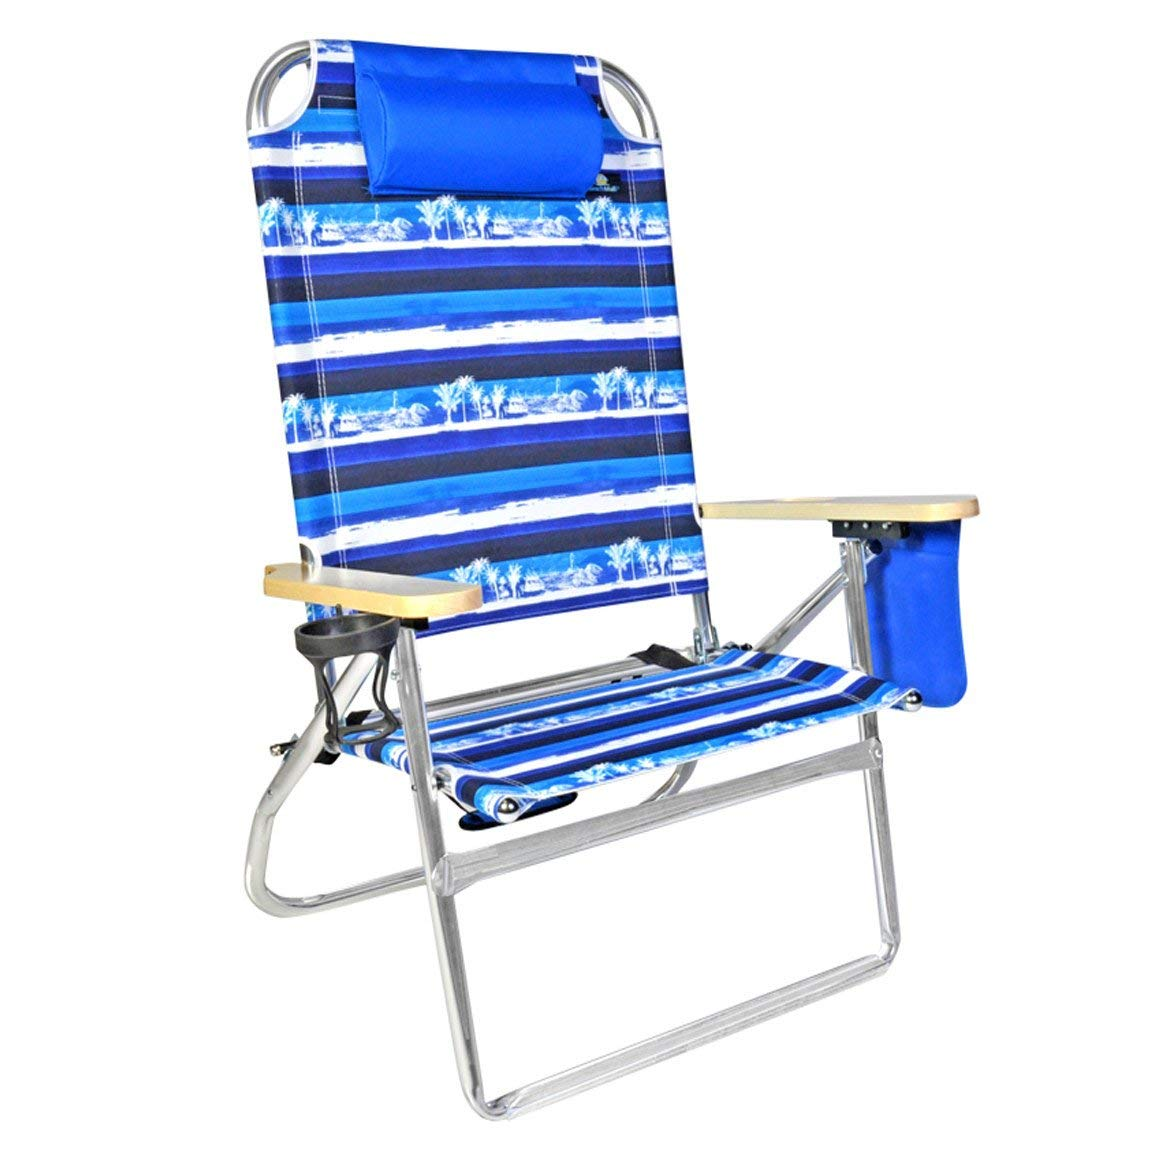 Review of - Extra Large - High Seat Heavy Duty 4 Position Beach Chair w/Drink Holder